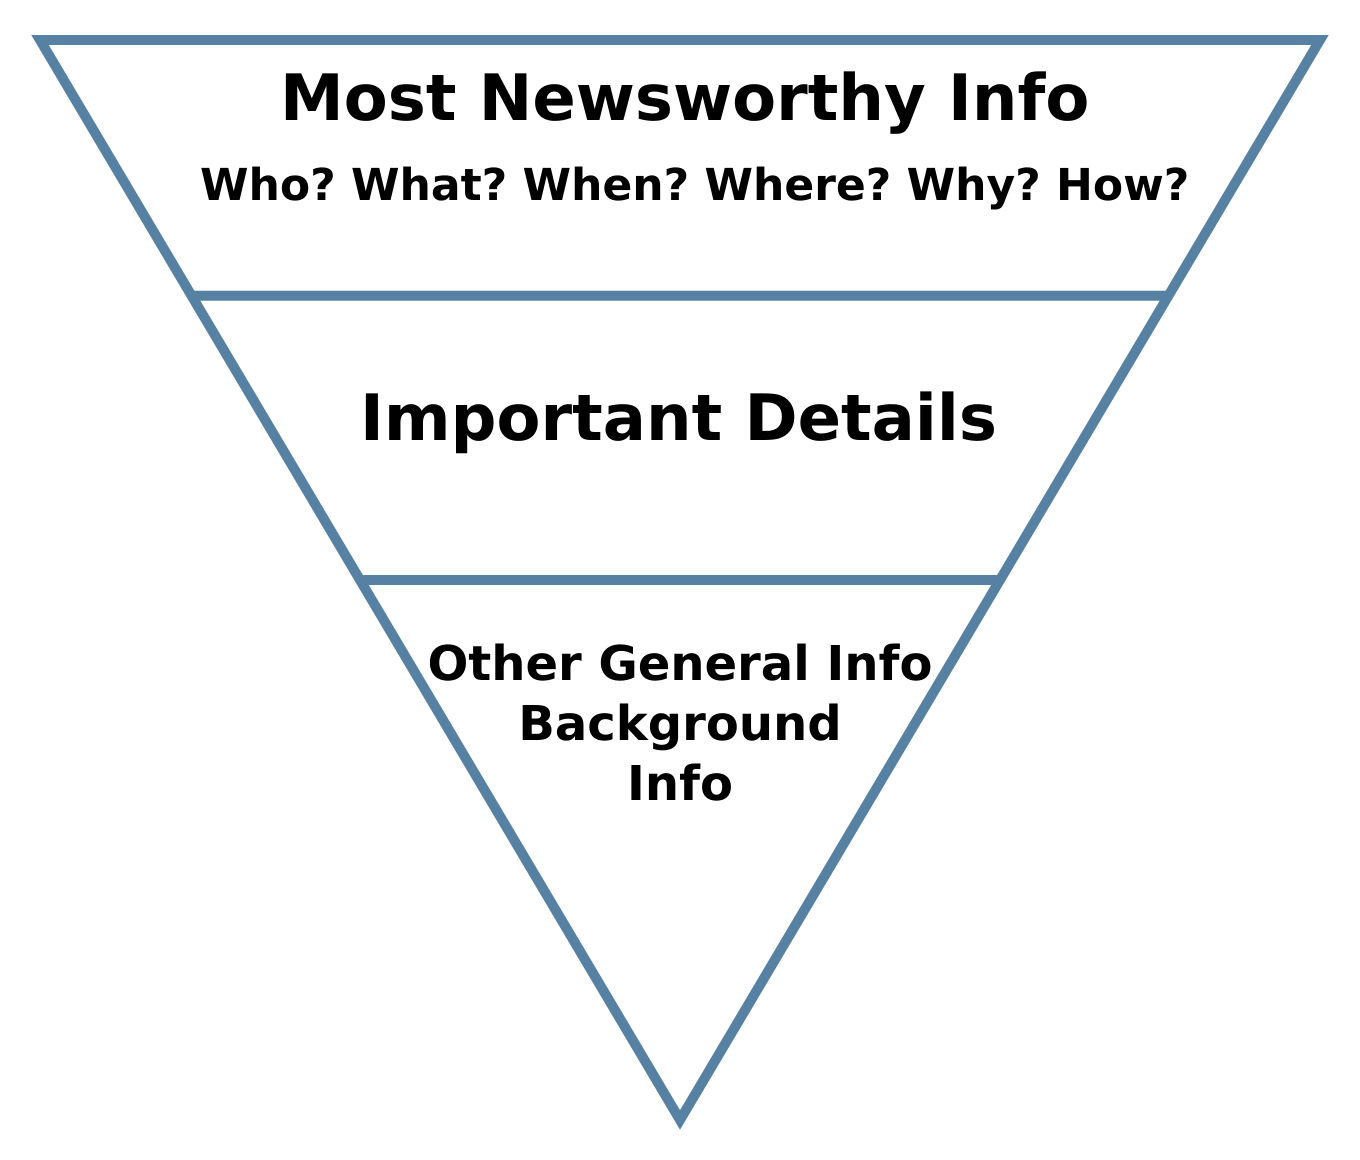 inverted triangle for newsworthy info